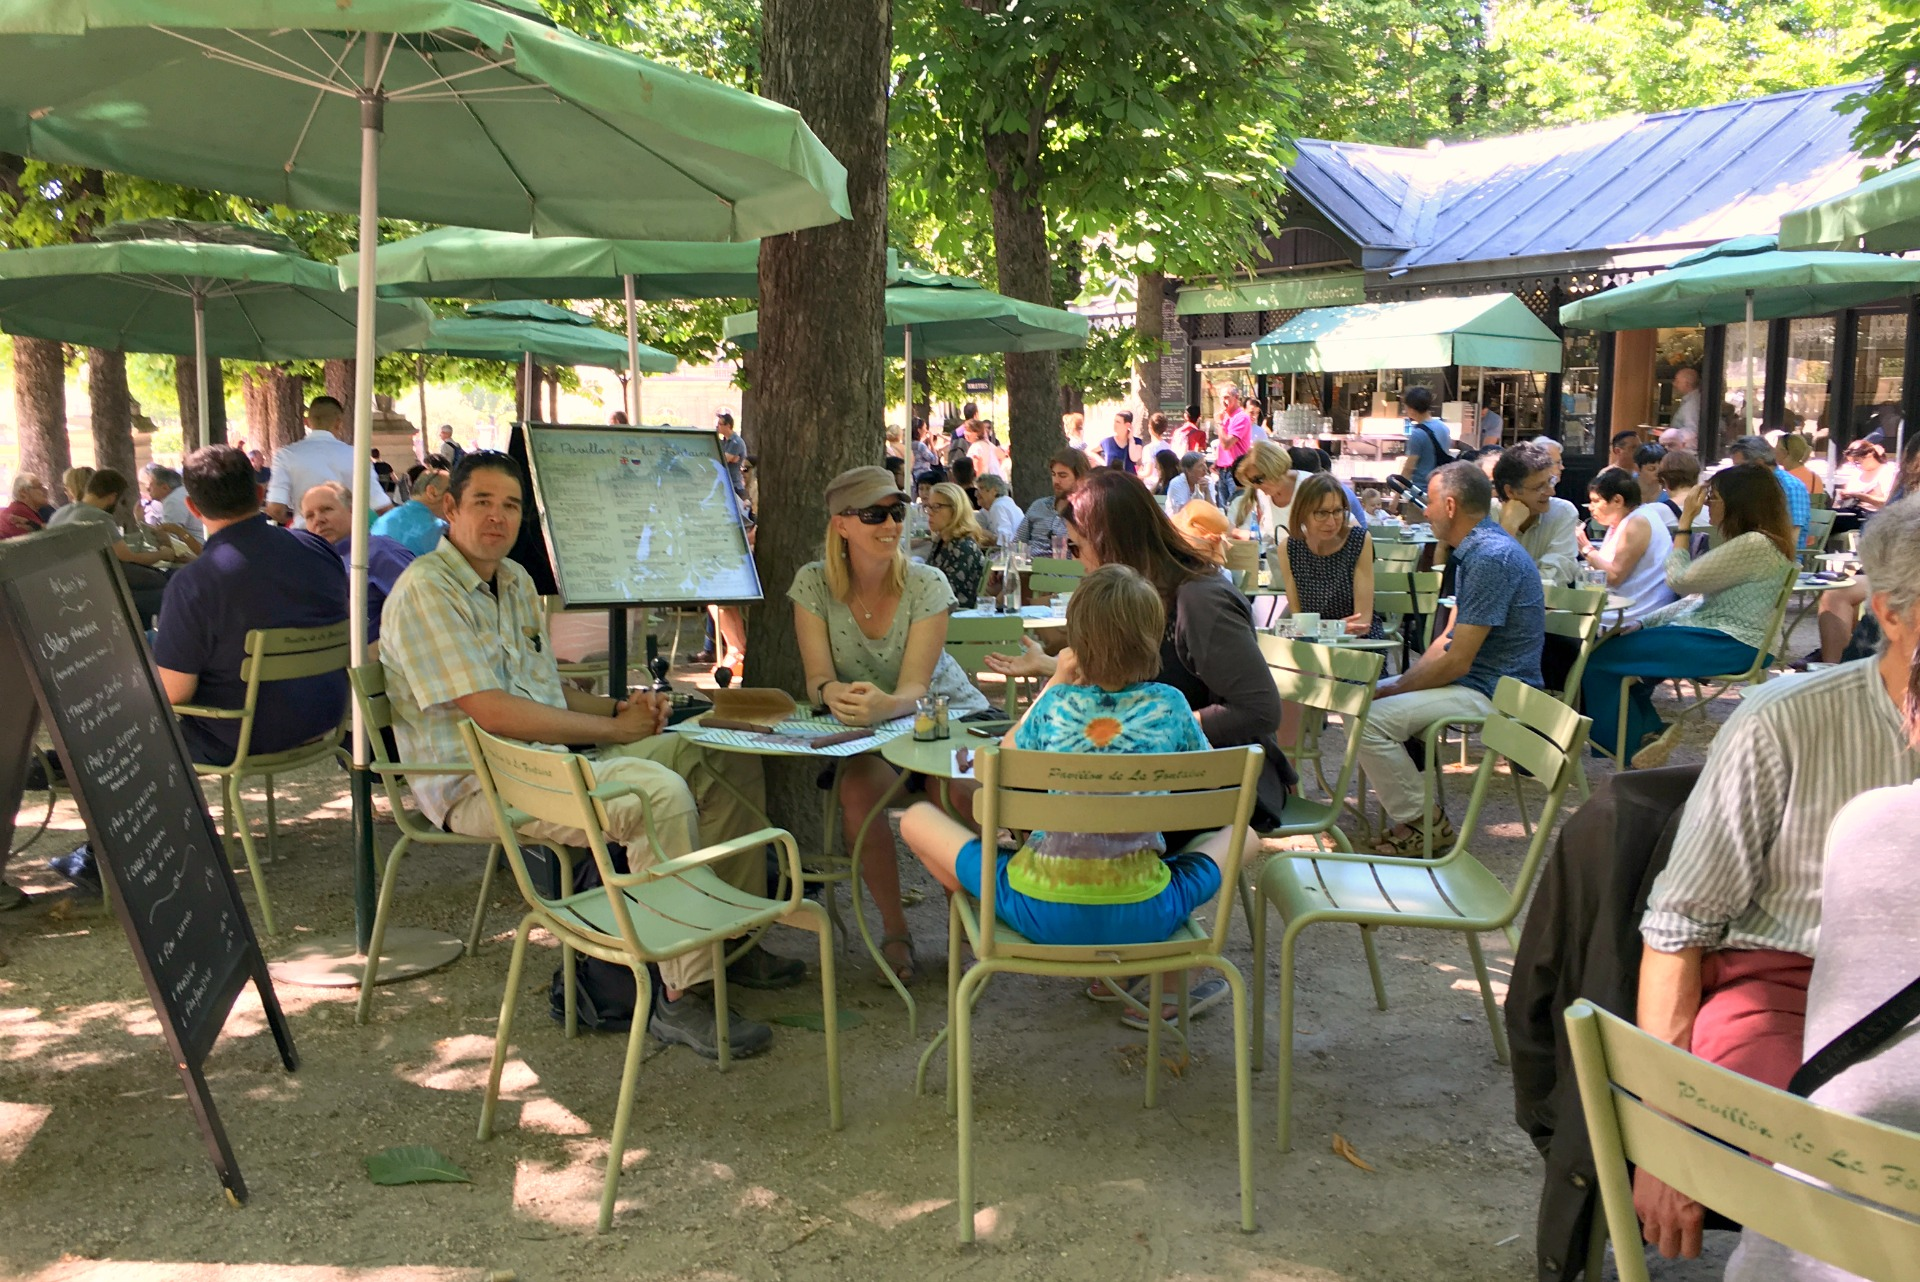 Cafe dining in the park at Luxembourg Gardens